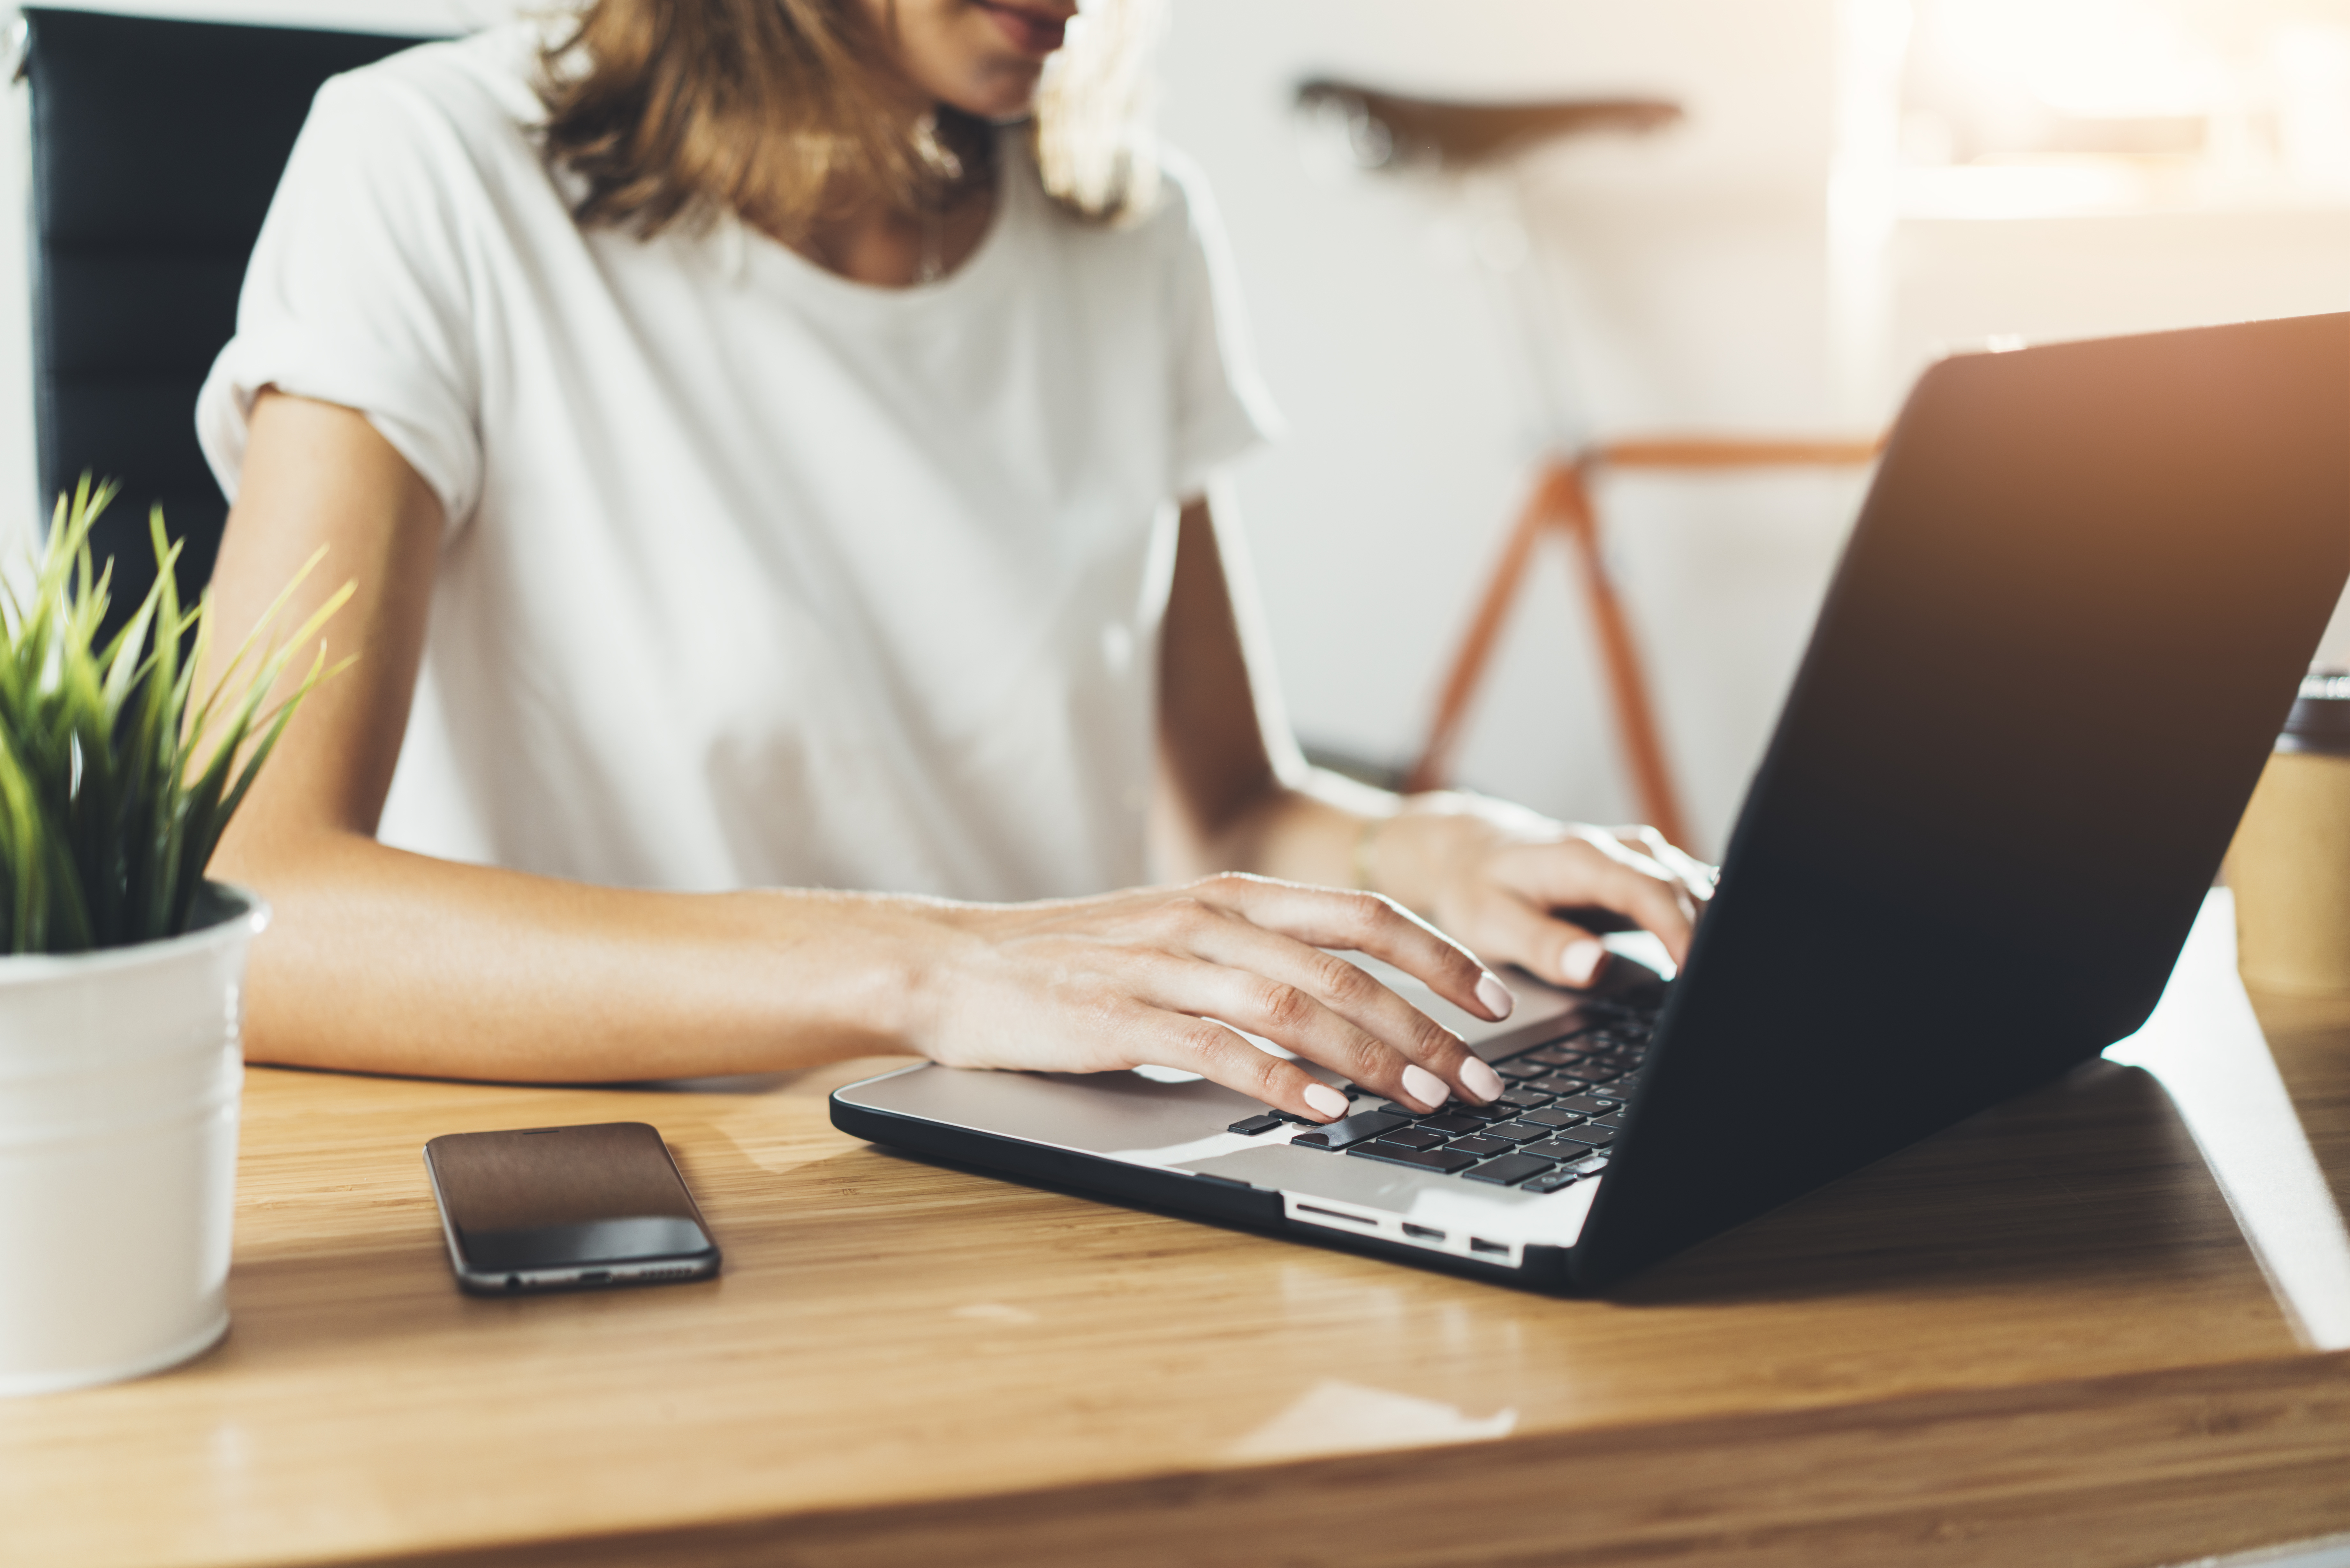 Coronavirus - 3 things to consider if you direct workers to work from home.